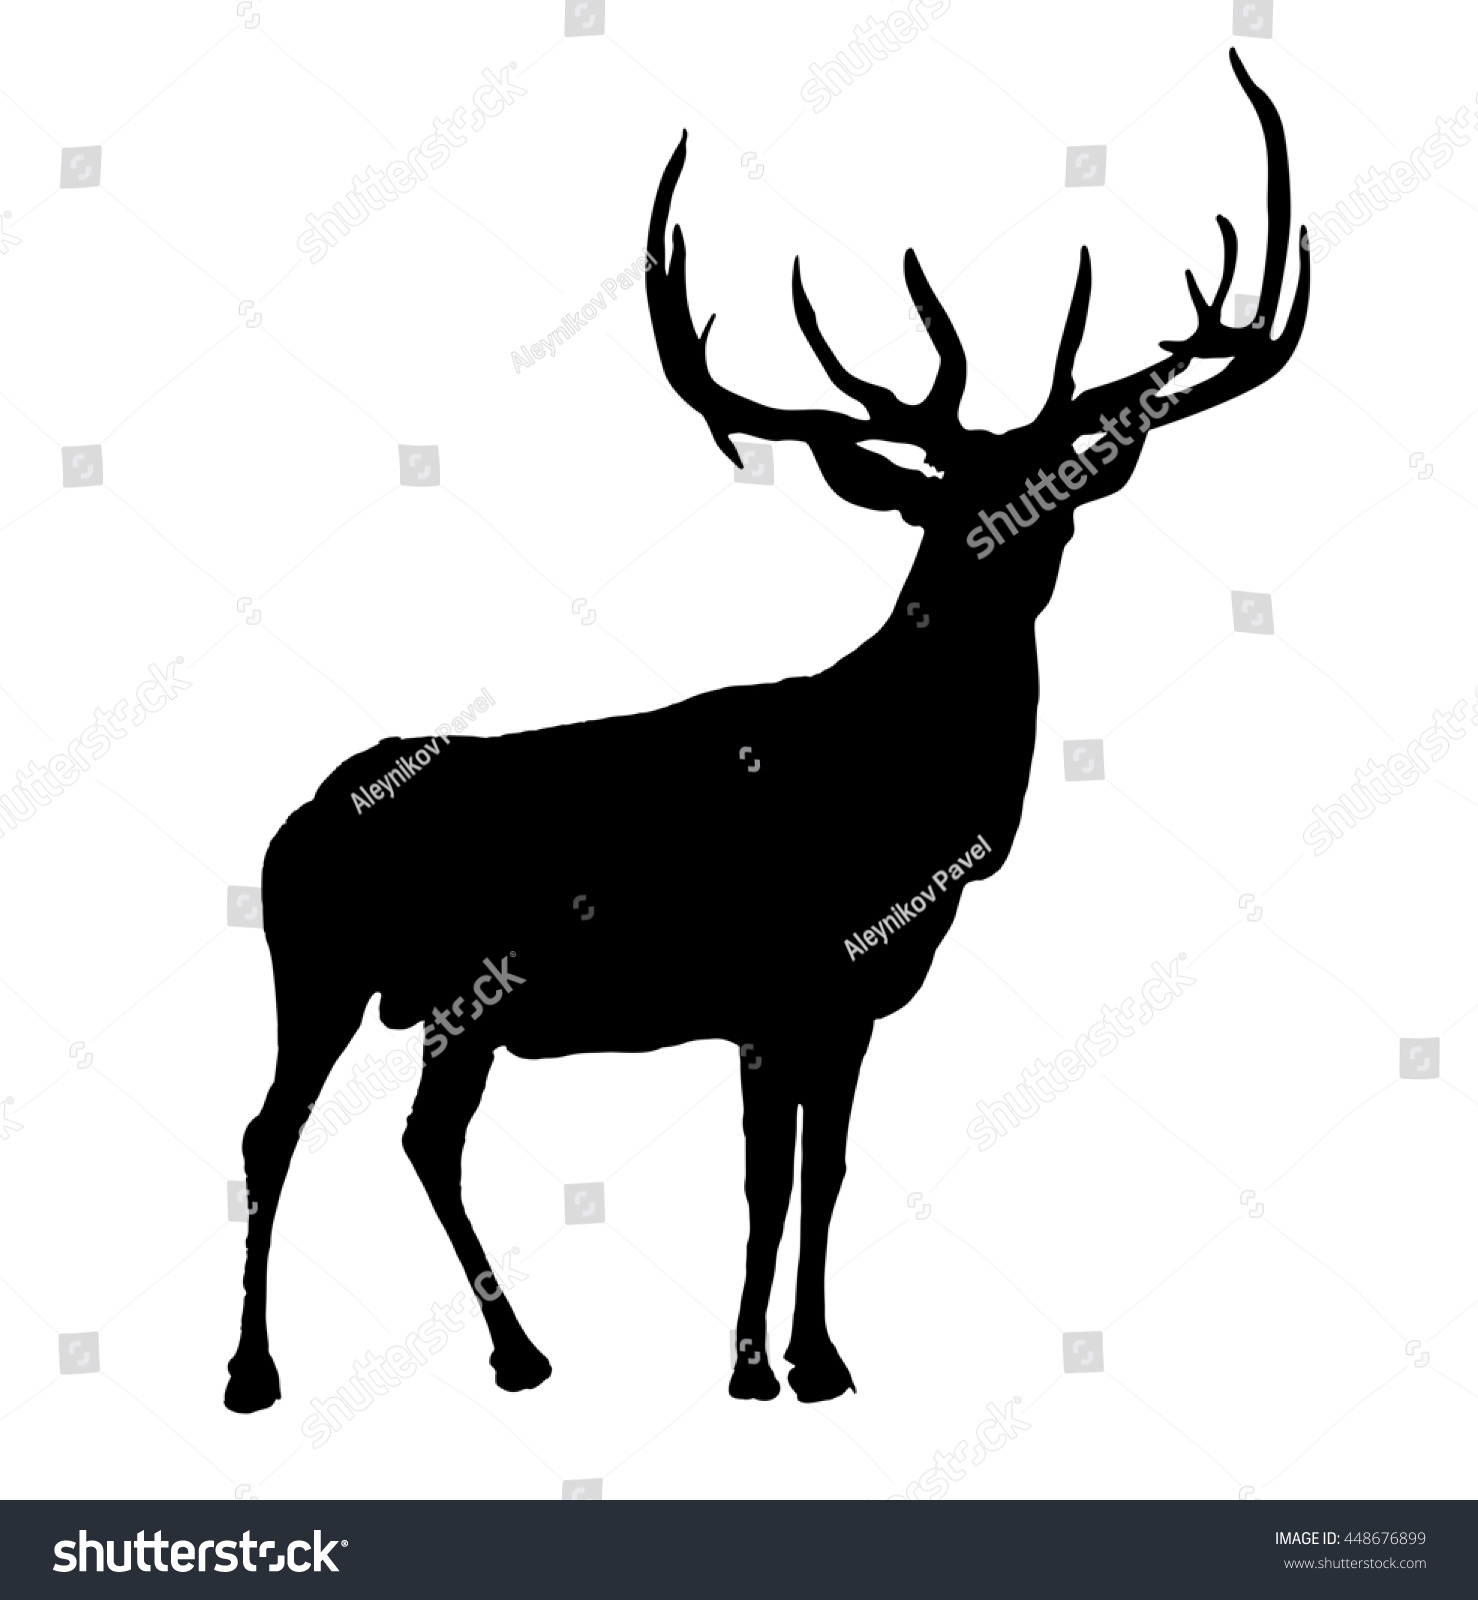 moose hand drawn outline stock illustration 448676899